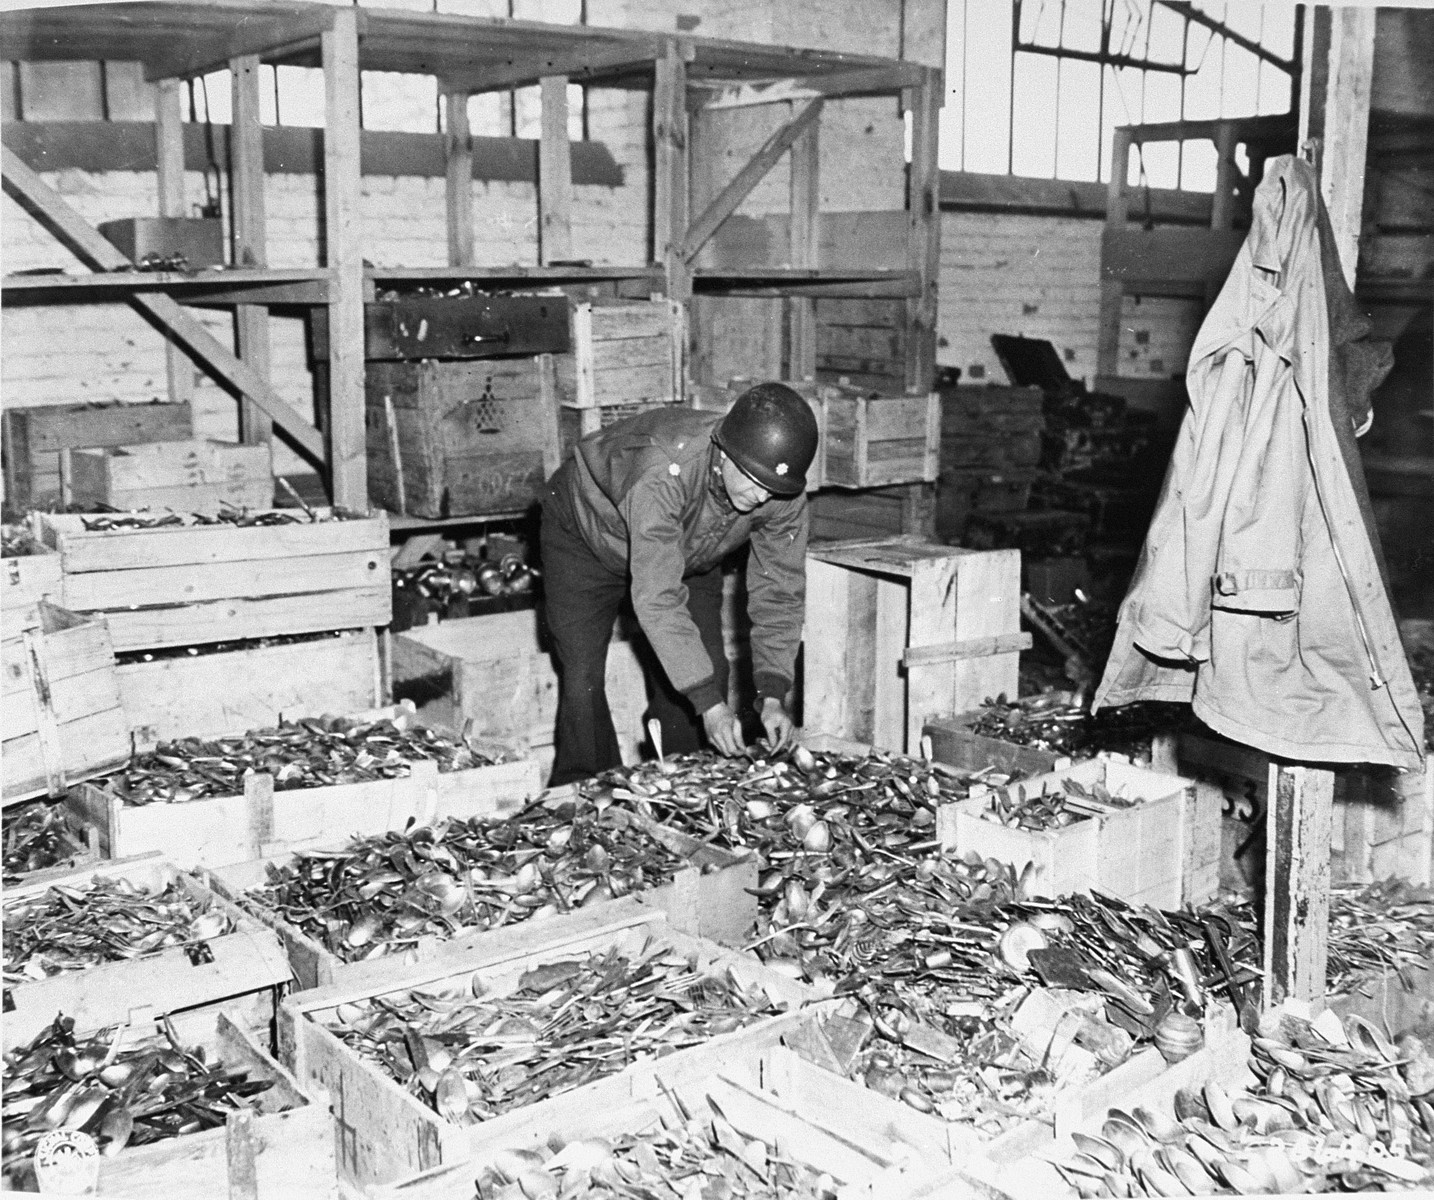 An American soldier sorts through crates of silverware taken from prisoners in Buchenwald.  The crates were hidden in a nearby cave along with other boxes of confiscated belongings.